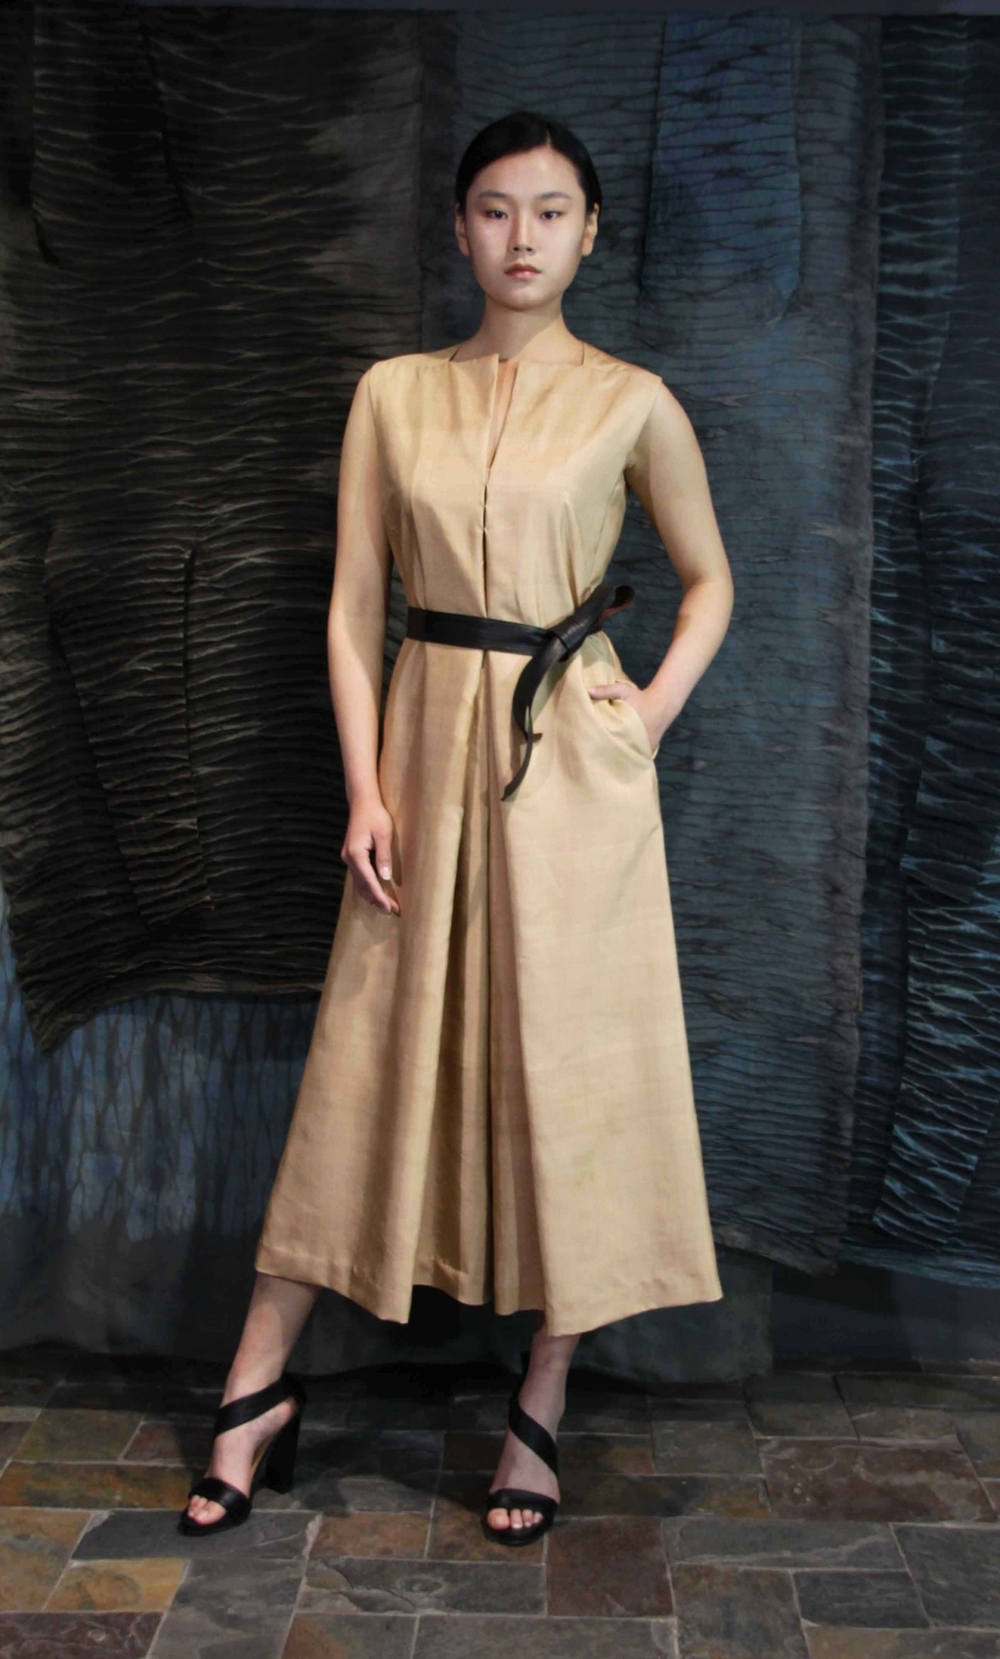 "28-22 Loose Honan-silk jumpsuit  /   真丝宽松款连身裤                                                                                                                                                                                                                                                                                                        /* Style Definitions */  table.MsoNormalTable 	{mso-style-name:""Table Normal""; 	mso-tstyle-rowband-size:0; 	mso-tstyle-colband-size:0; 	mso-style-noshow:yes; 	mso-style-priority:99; 	mso-style-qformat:yes; 	mso-style-parent:""""; 	mso-padding-alt:0in 5.4pt 0in 5.4pt; 	mso-para-margin-top:0in; 	mso-para-margin-right:0in; 	mso-para-margin-bottom:10.0pt; 	mso-para-margin-left:0in; 	line-height:115%; 	mso-pagination:widow-orphan; 	font-size:11.0pt; 	font-family:""Calibri"",""sans-serif""; 	mso-ascii-font-family:Calibri; 	mso-ascii-theme-font:minor-latin; 	mso-hansi-font-family:Calibri; 	mso-hansi-theme-font:minor-latin; 	mso-bidi-font-family:""Times New Roman""; 	mso-bidi-theme-font:minor-bidi;}"